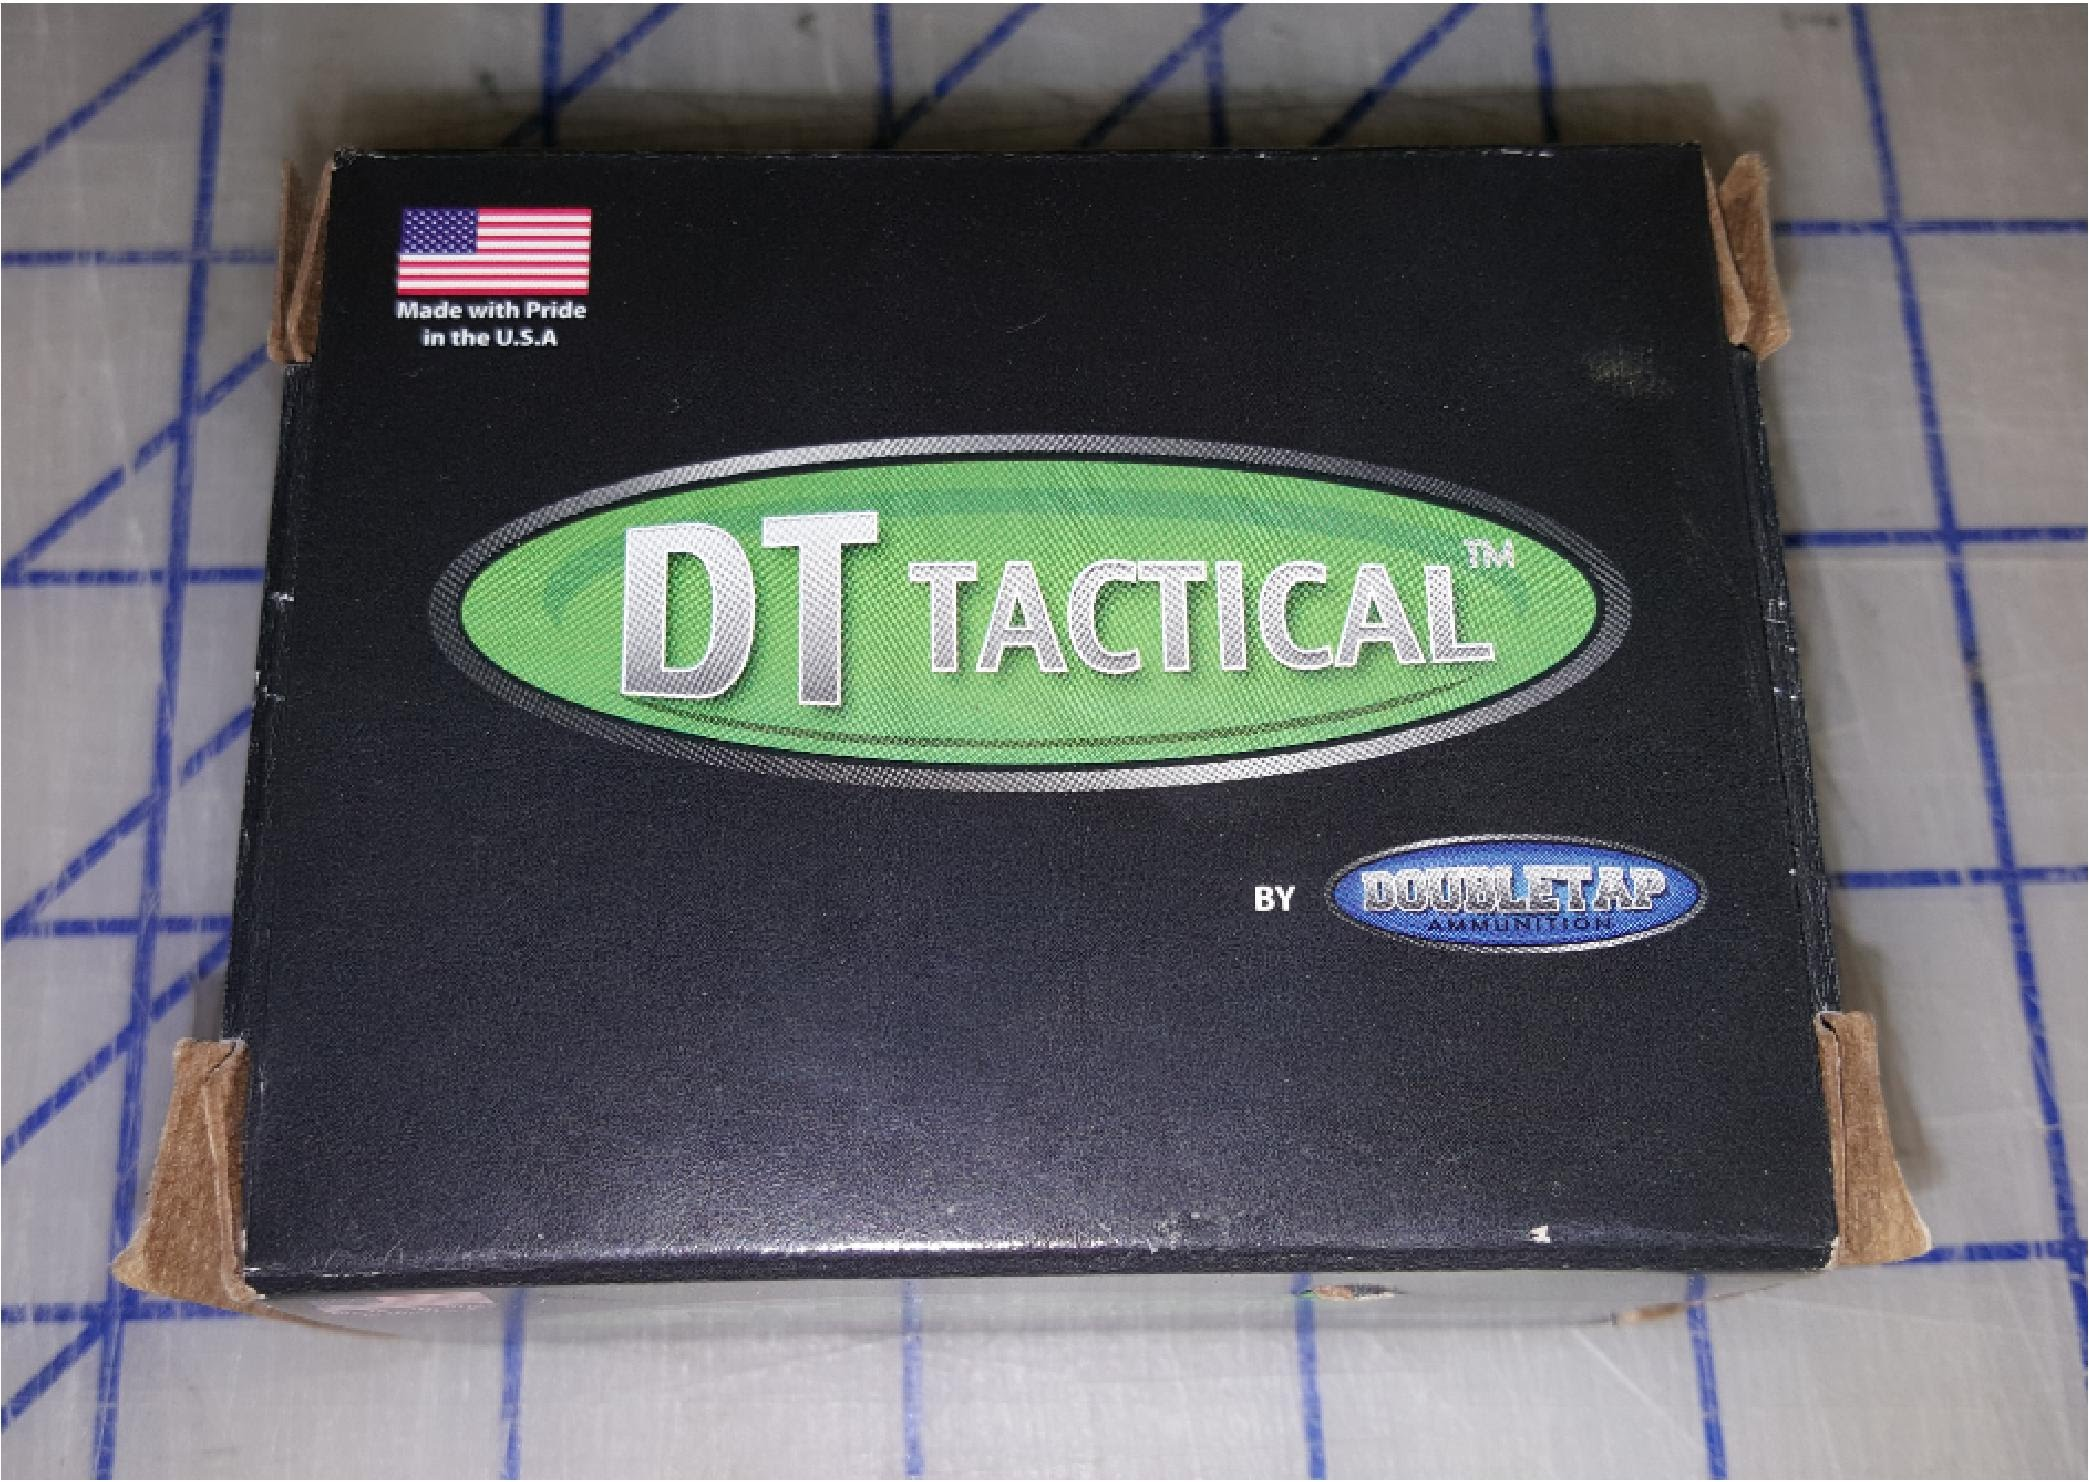 10mm DT Tactical JHP Equalizer 230 gr Gel Test